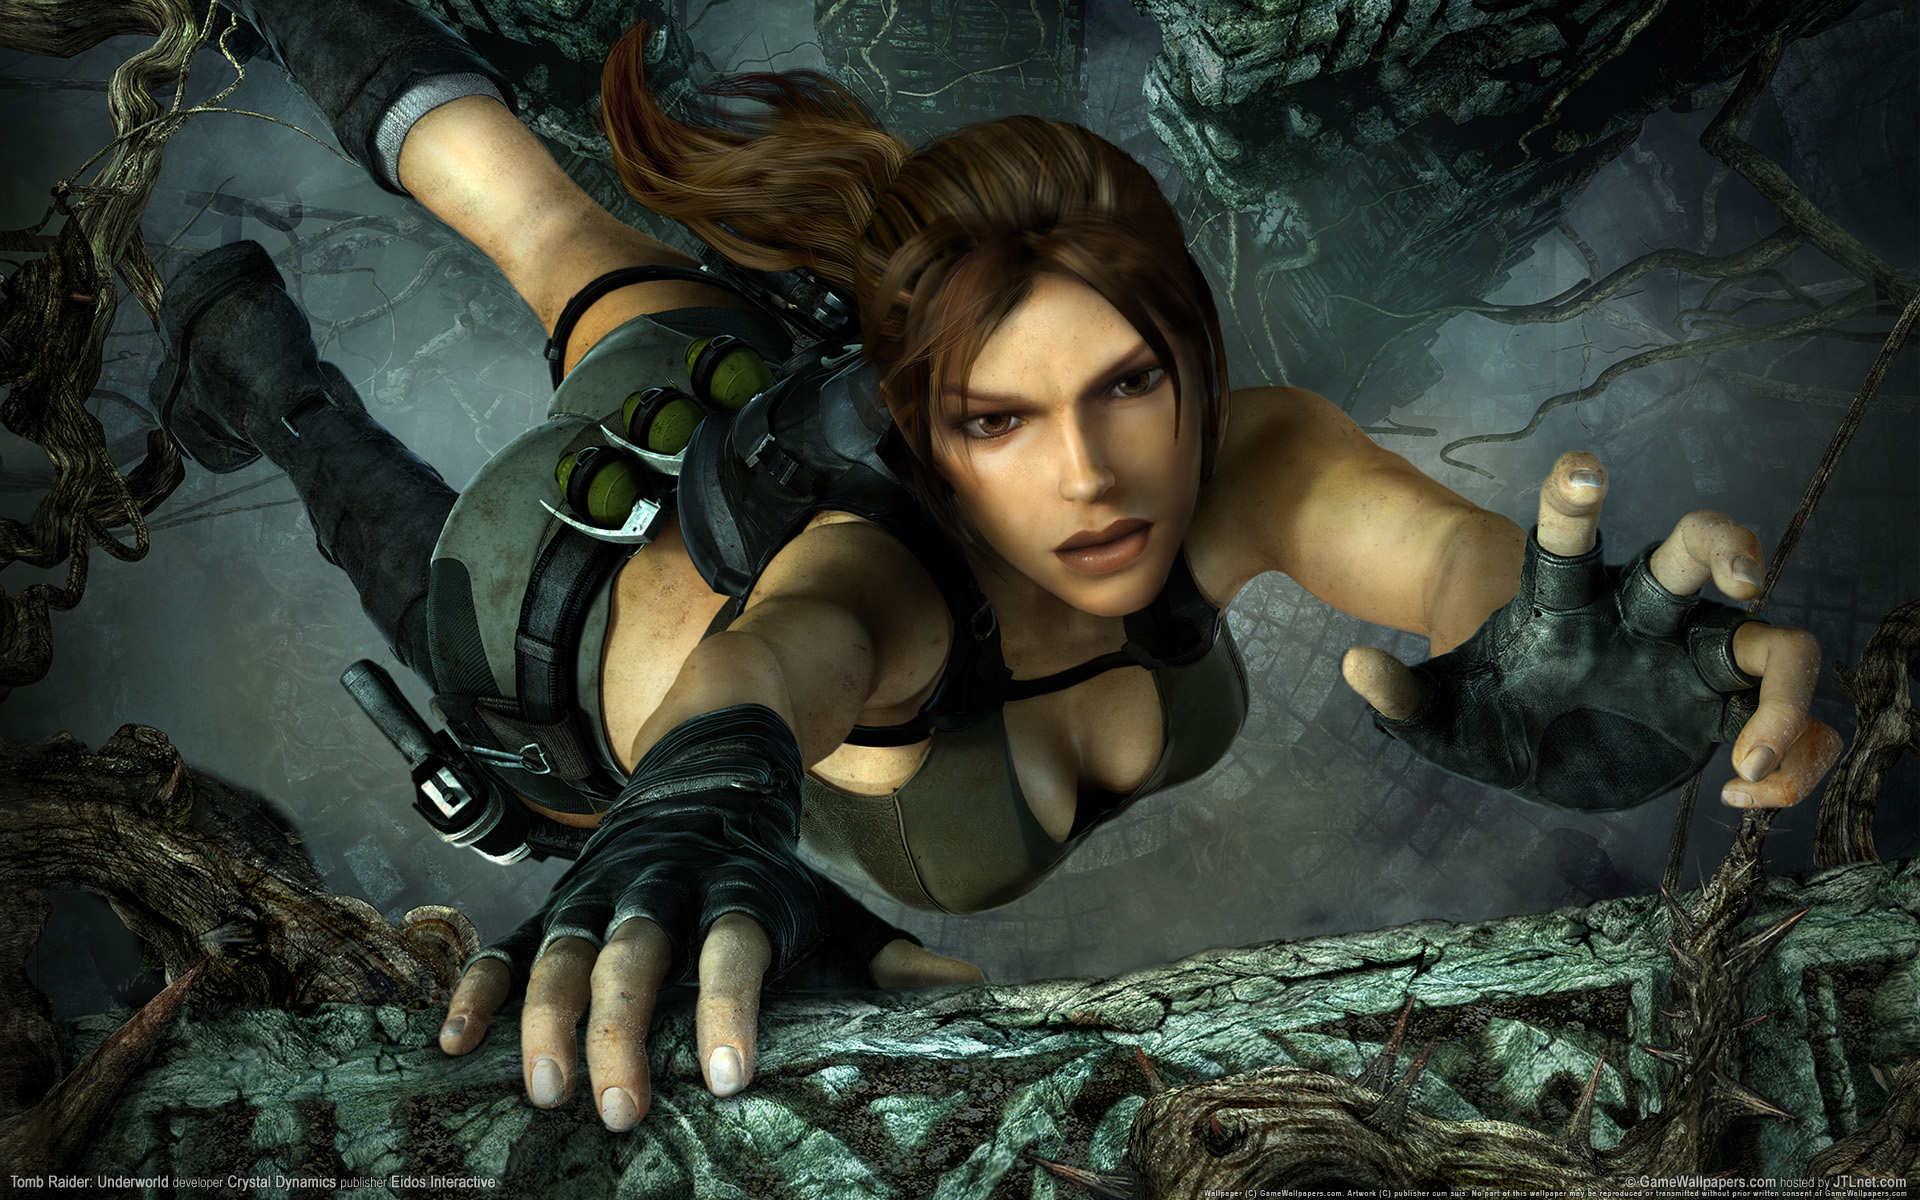 The highs and lows of Tomb Raider